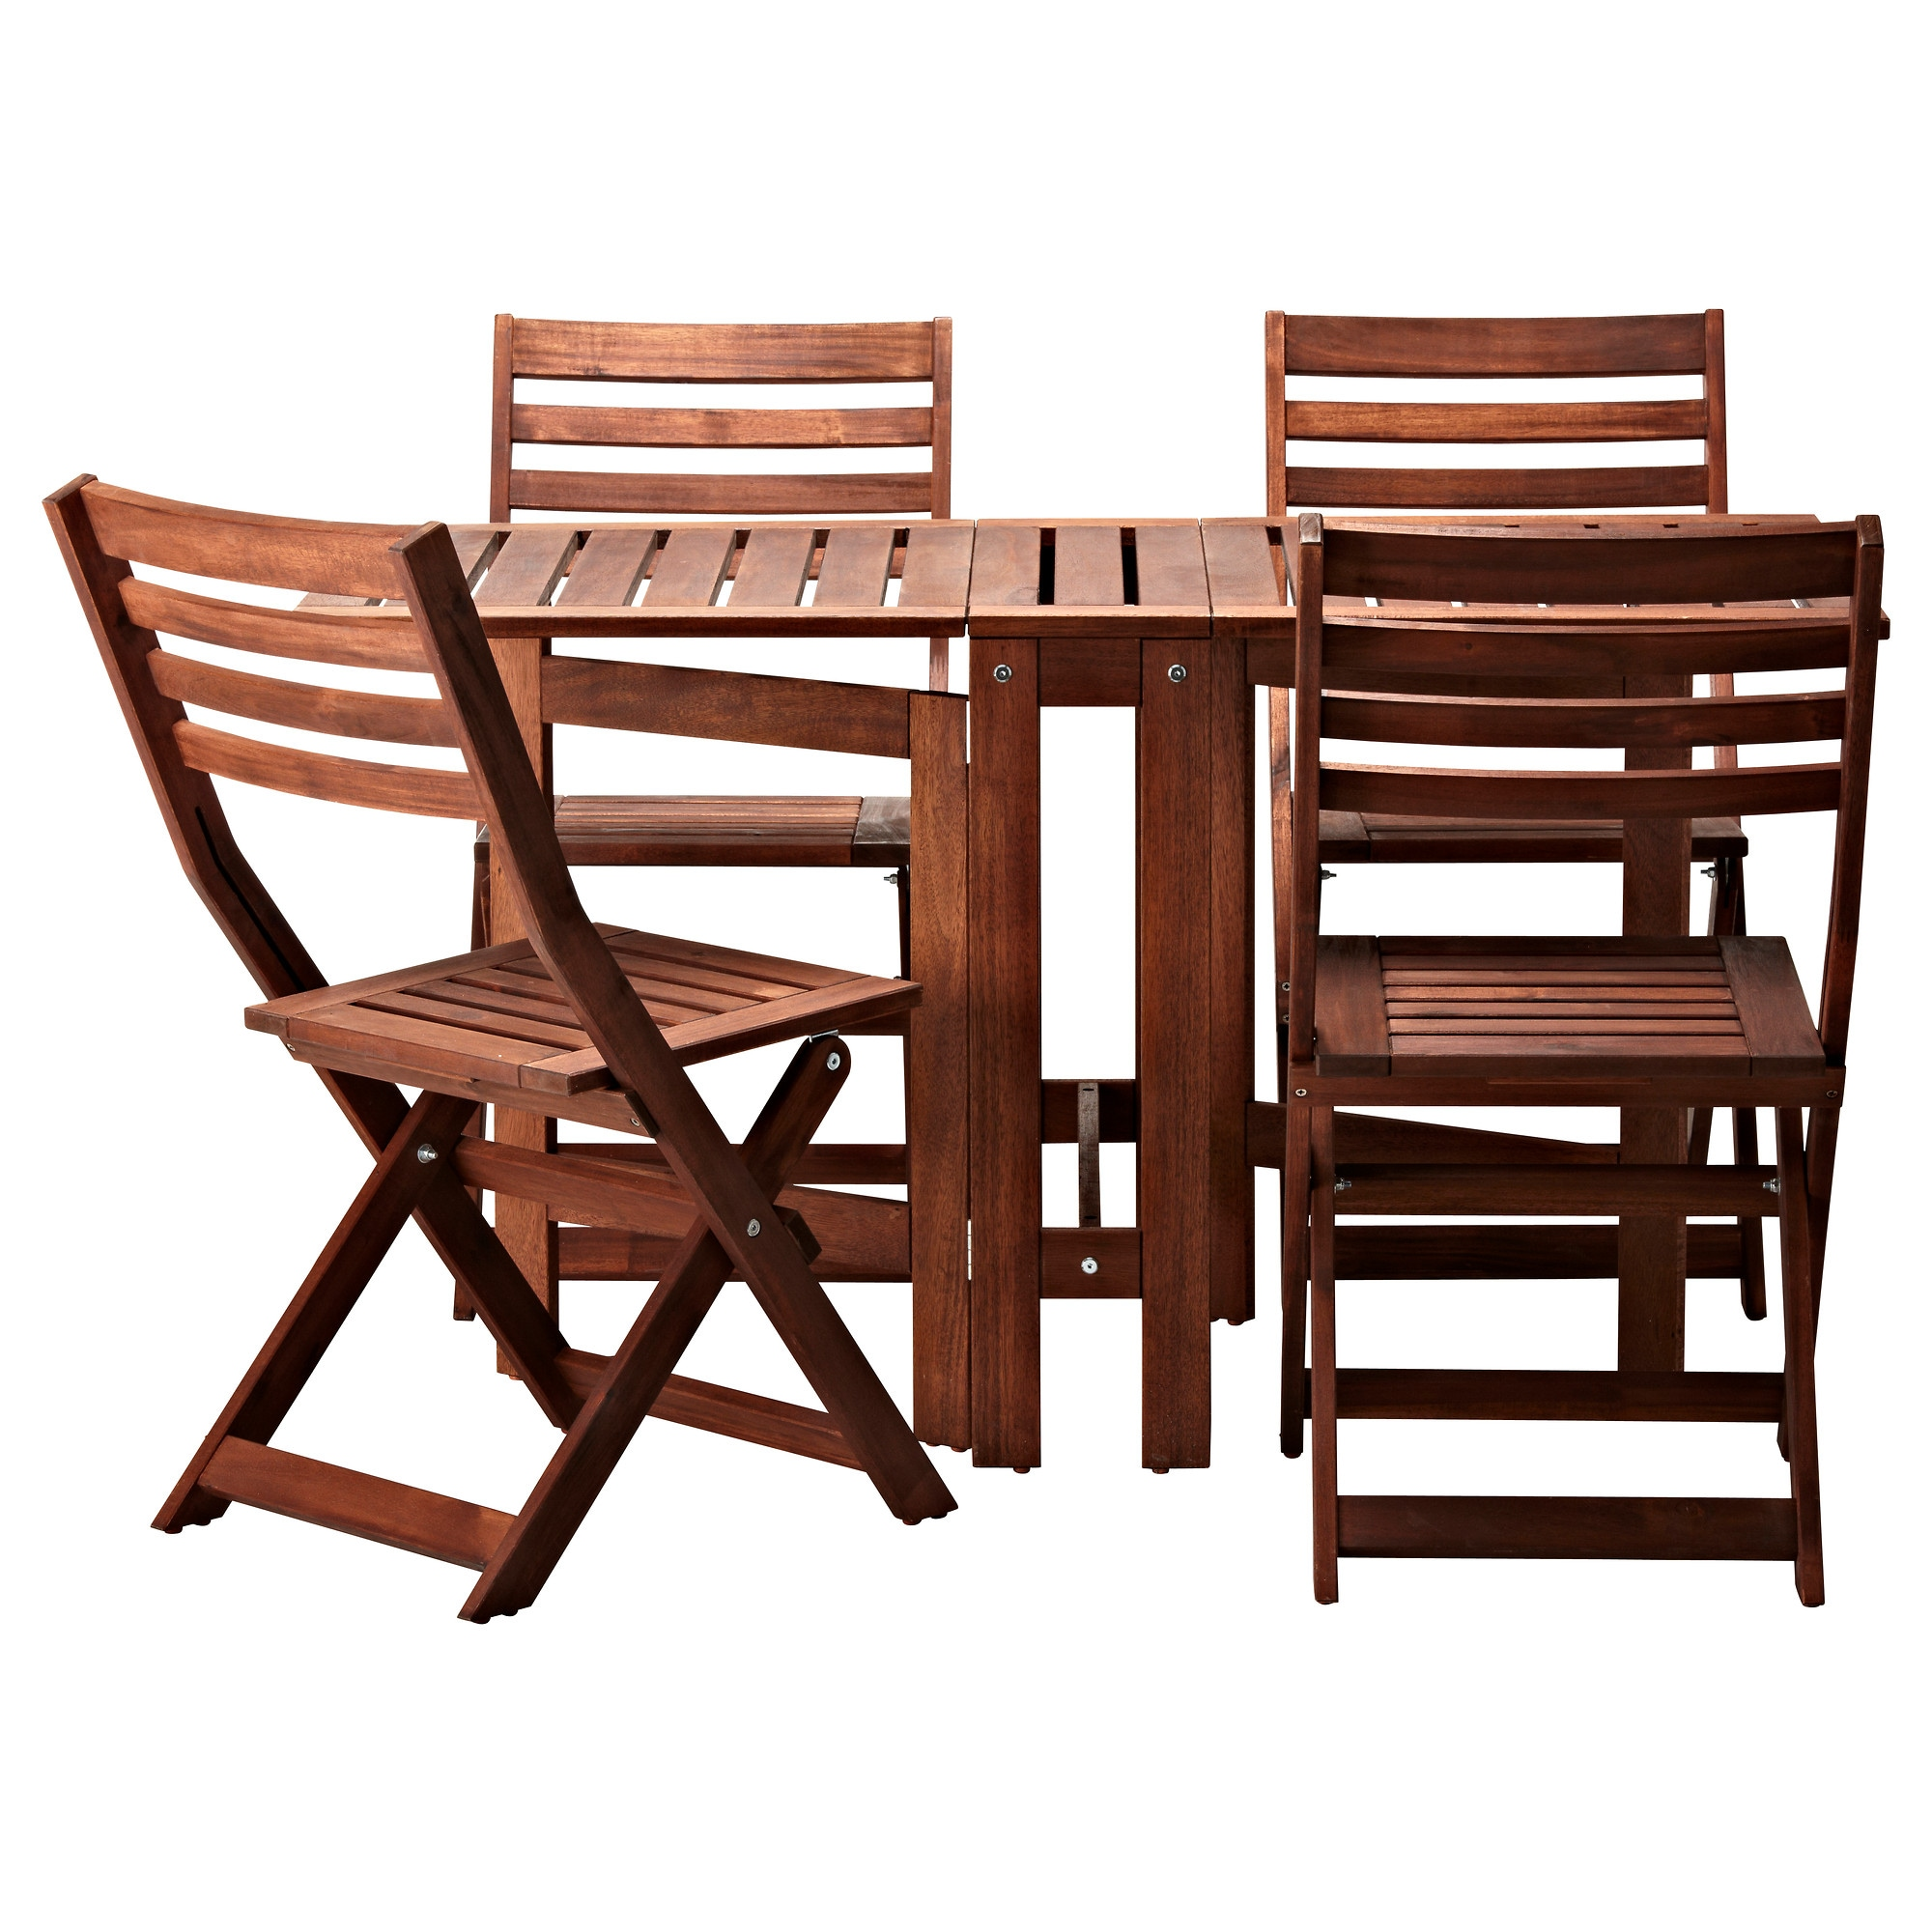 ÄPPLARÖ Table And 4 Folding Chairs, Outdoor, Brown Stained Part 22